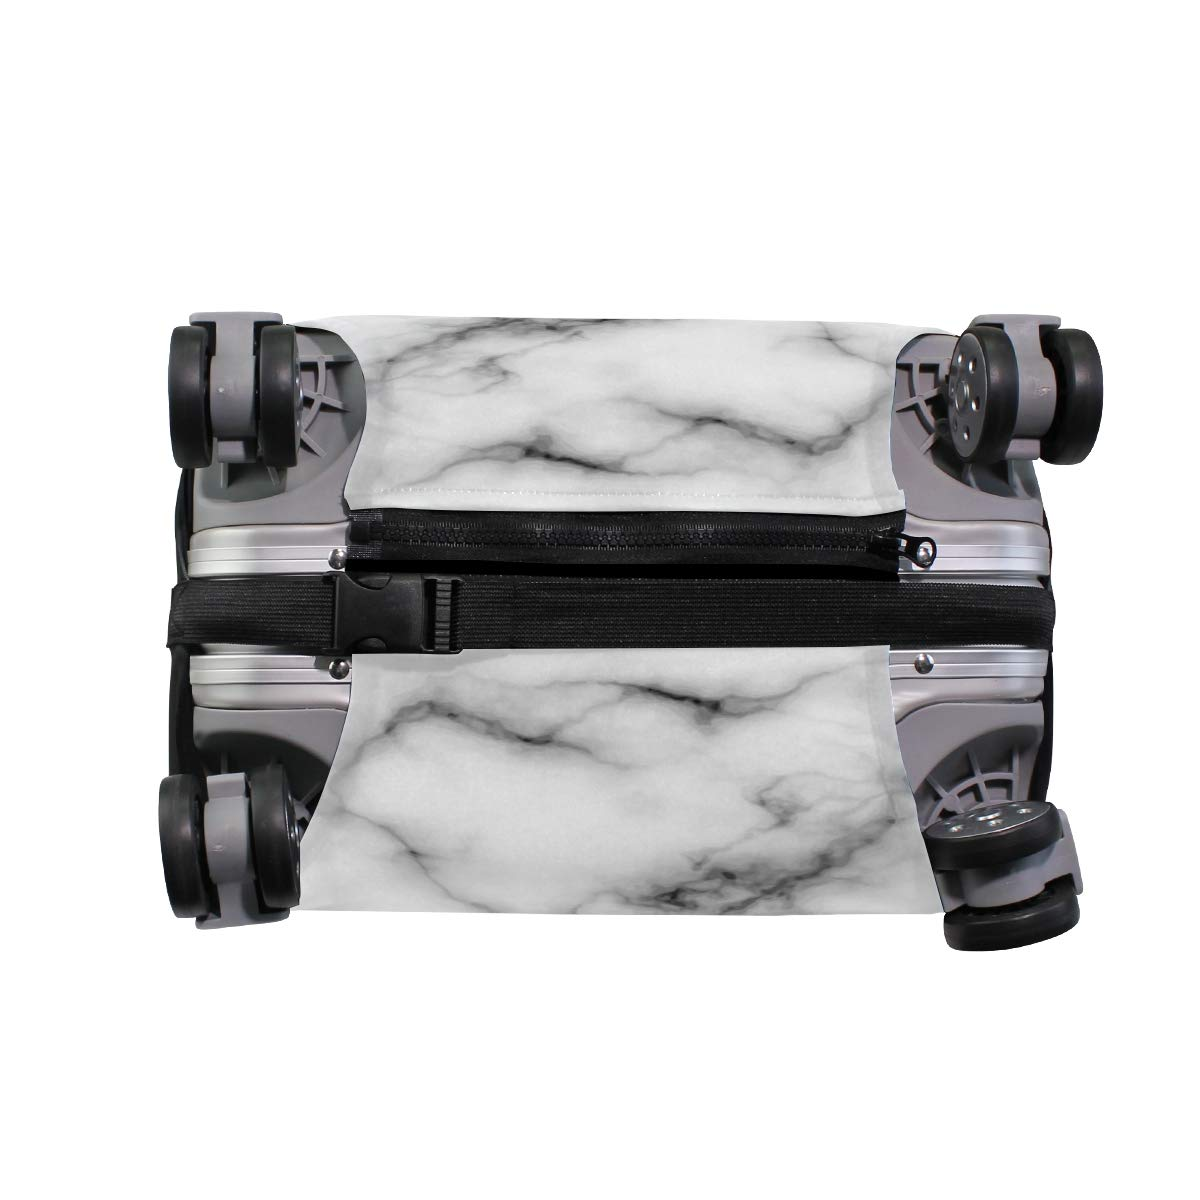 VIKKO Marble Travel Luggage Cover Suitcase Cover Protector Travel Case Bag Protector Elastic Luggage Case Cover Fits 29-32 Inch Luggage for Kids Men Women Travel